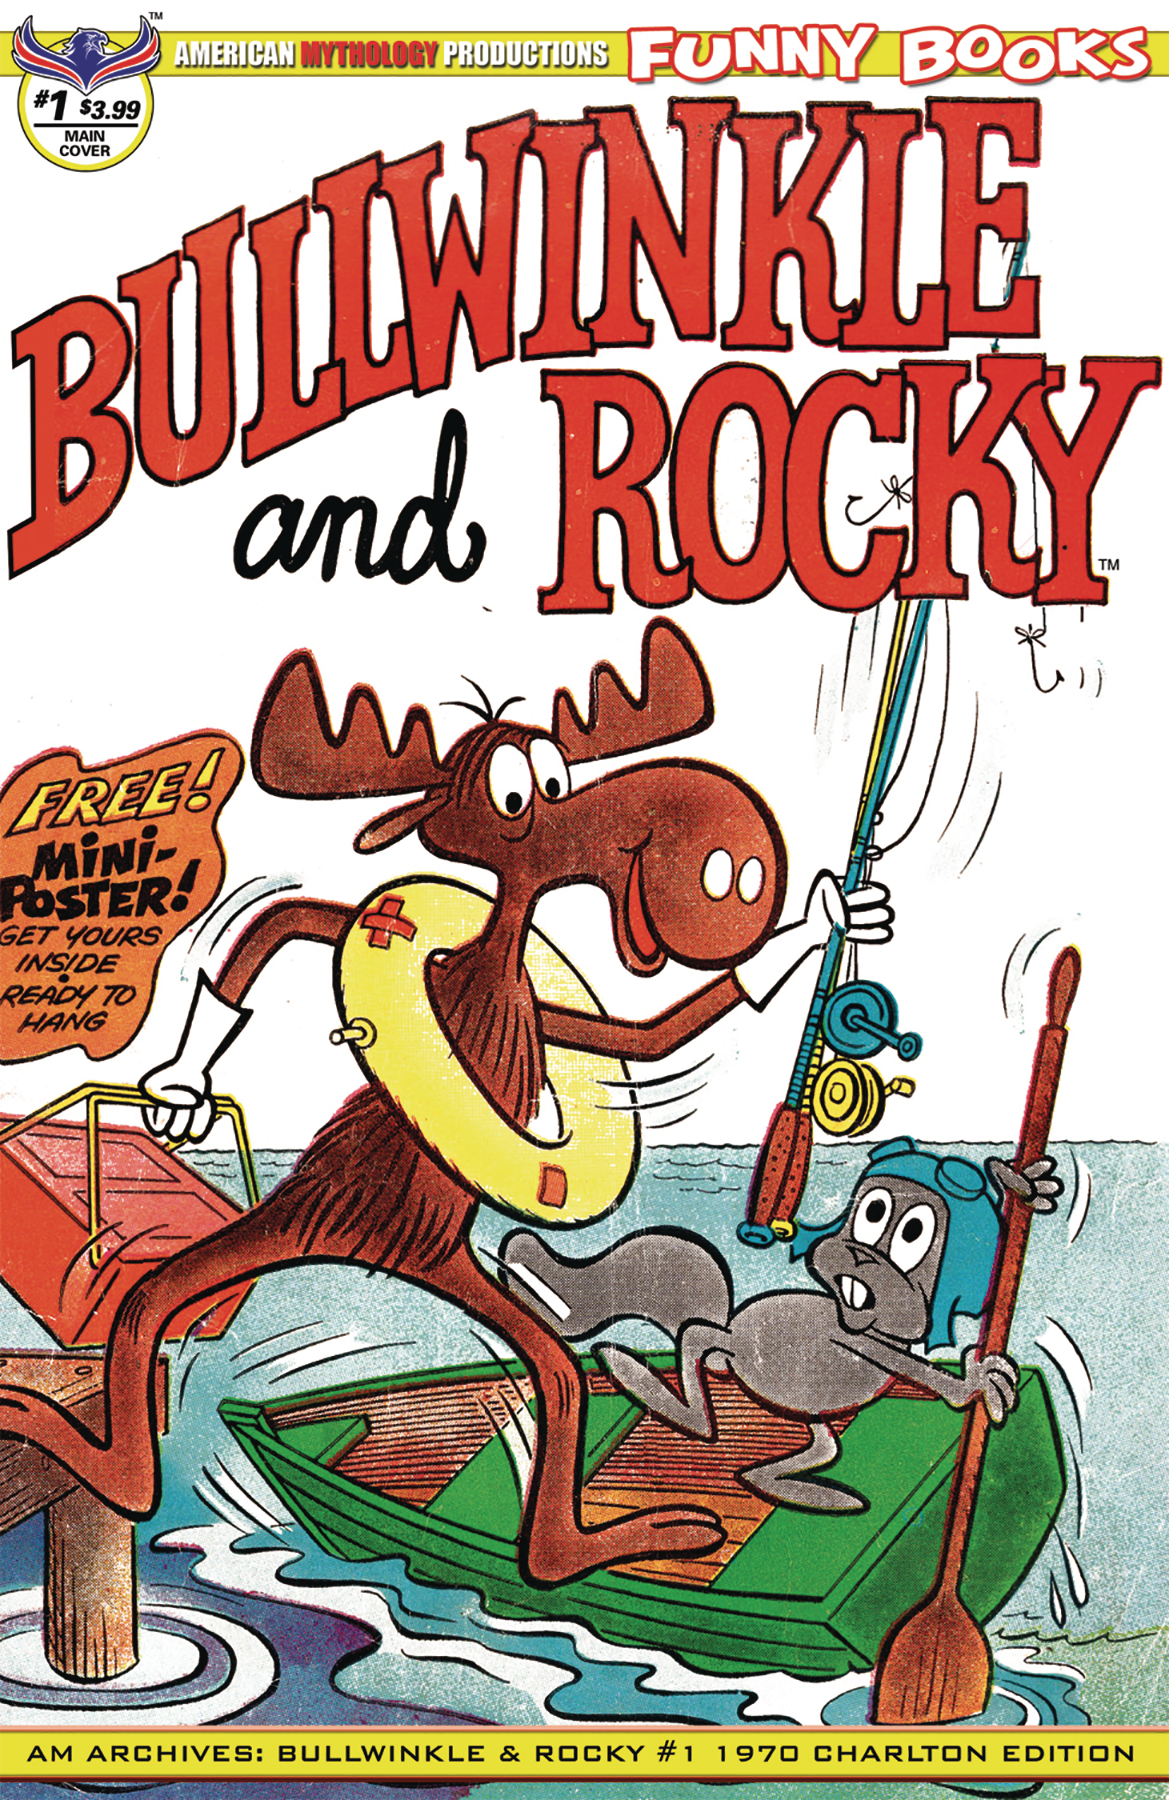 AM ARCHIVES BULLWINKLE & ROCKY #1 CHARLTON ED